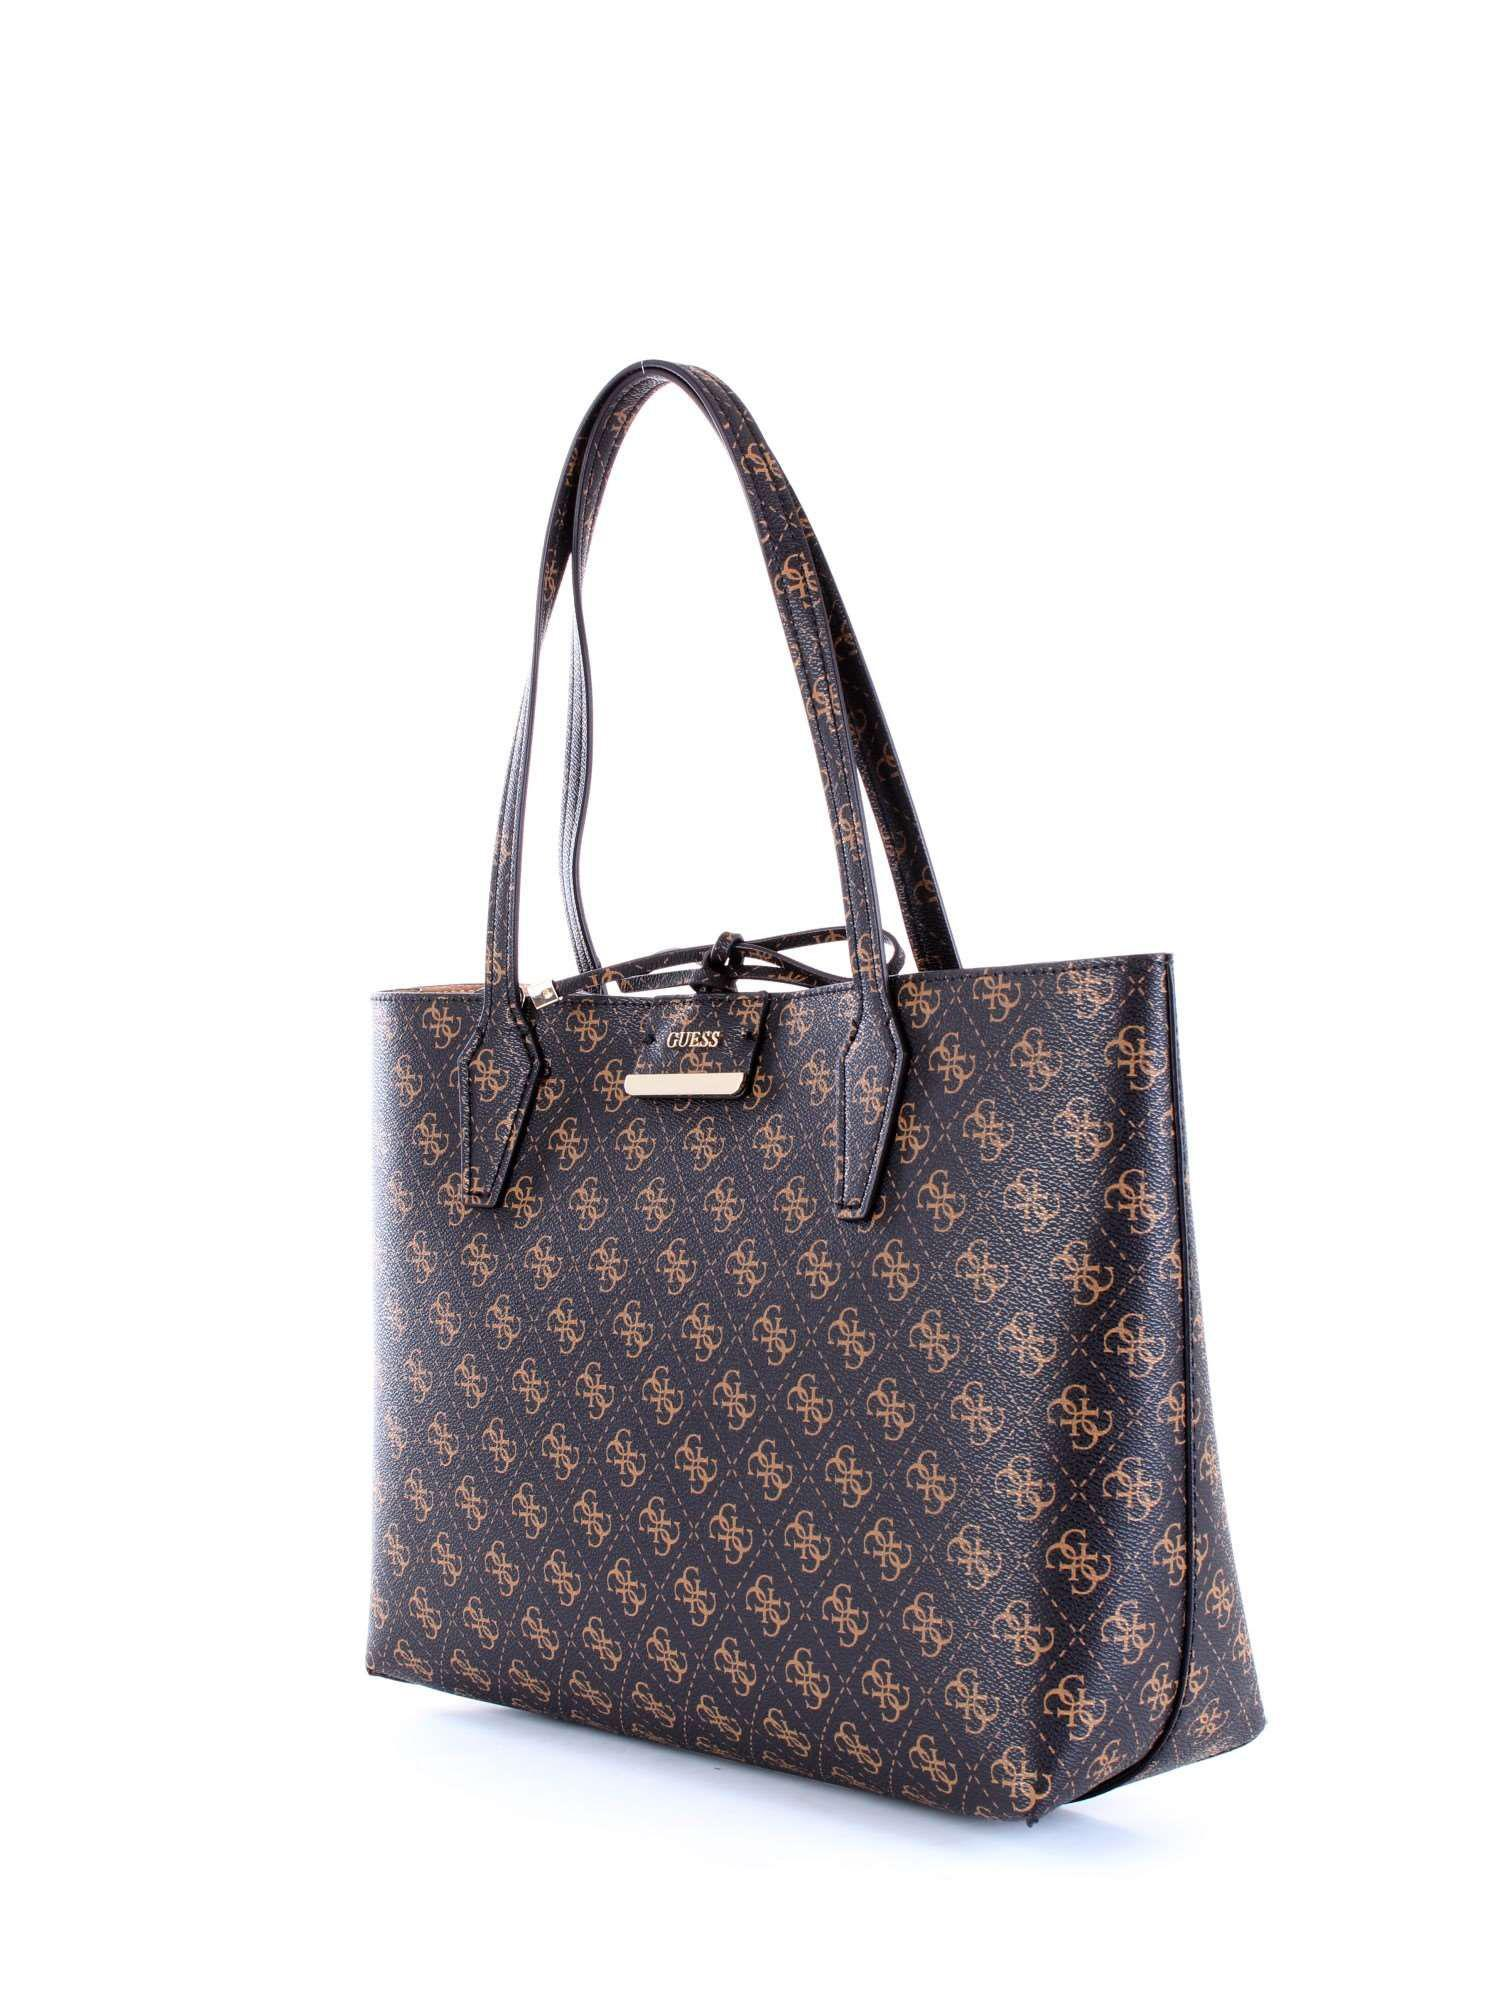 c41c15c5a500 ... Guess - Womens Brown Faux Leather Tote - Lyst. View fullscreen more  photos 304c8 83305 ...